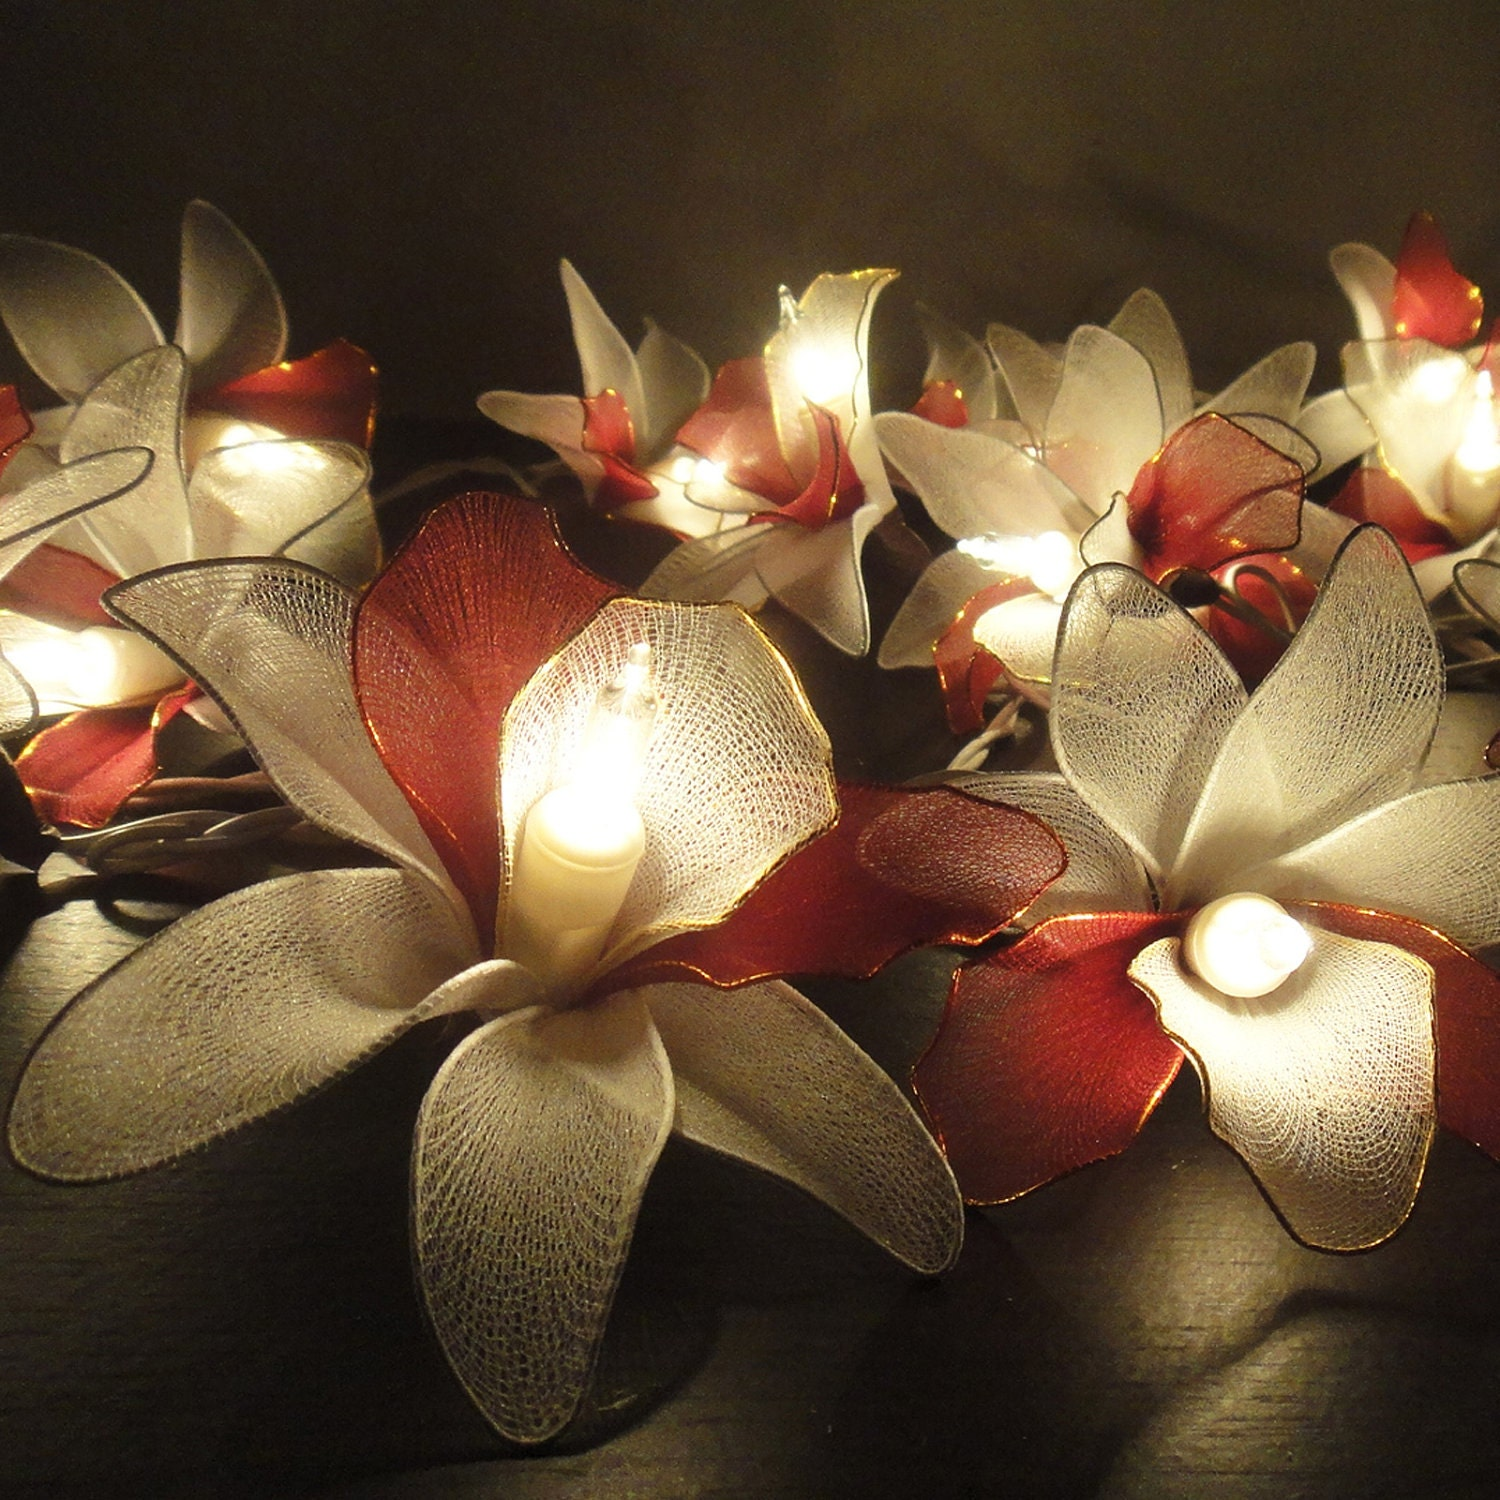 20 White-Burgundy Orchid Flower Fairy String Lights by marwincraft